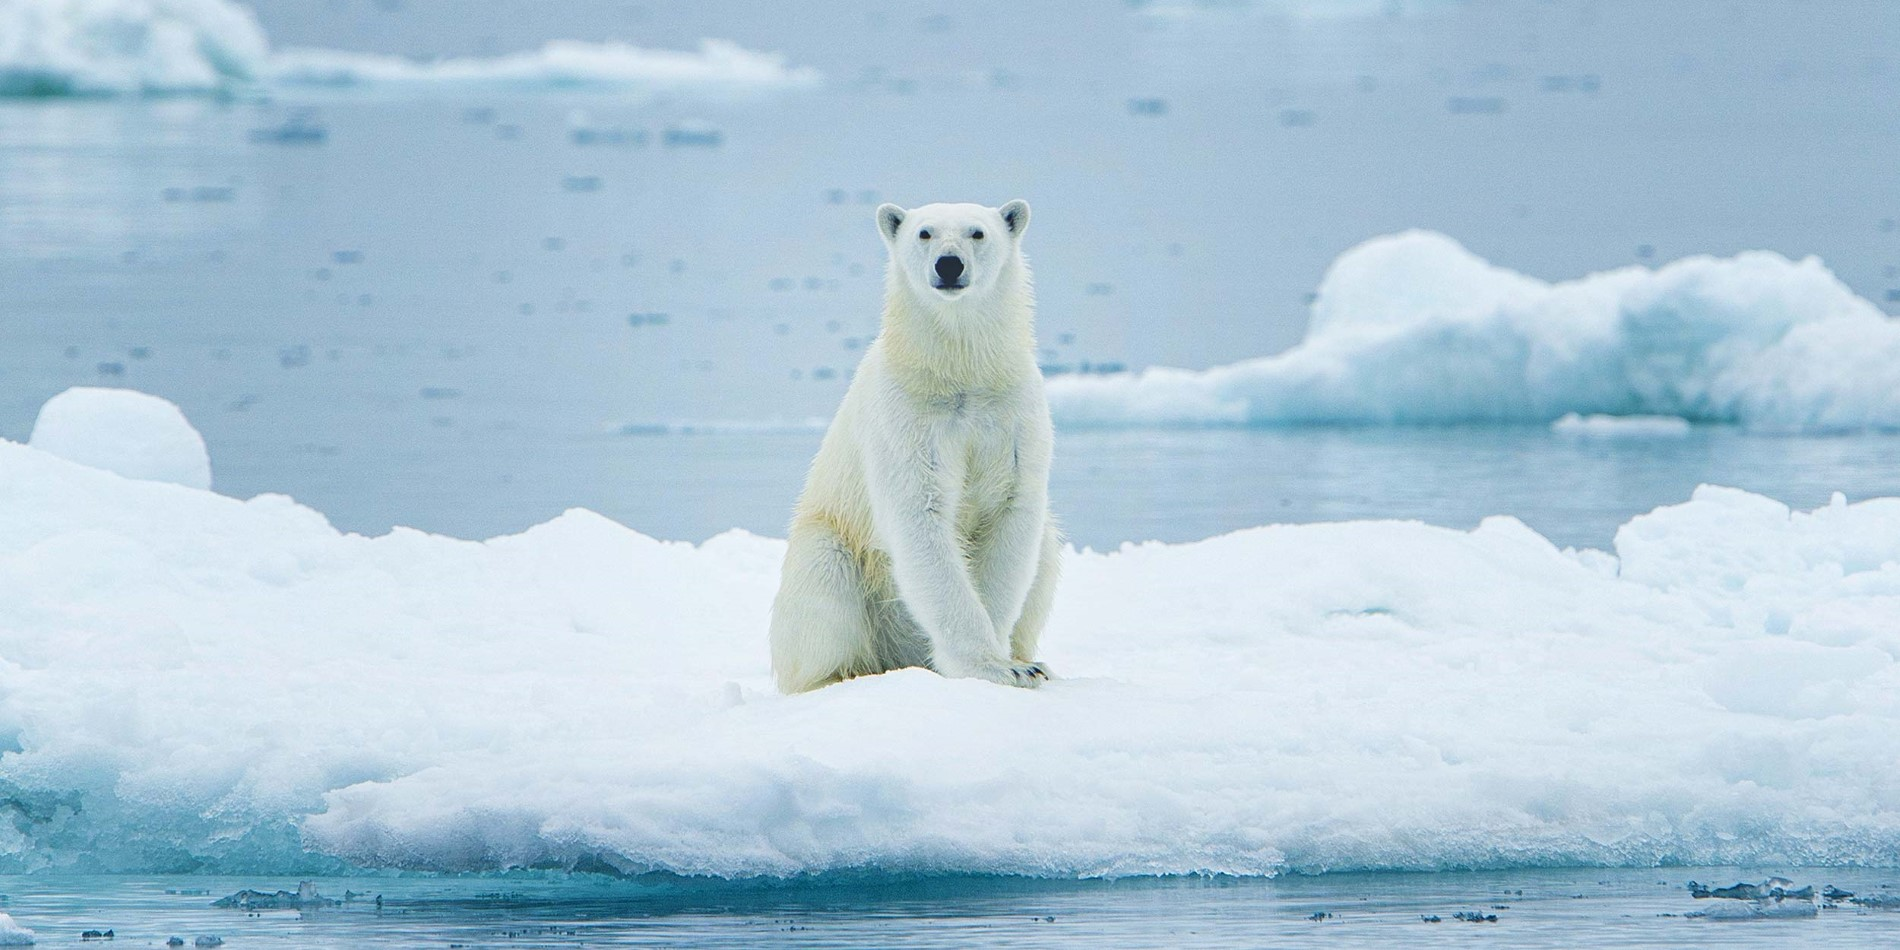 Majestic Polarbear on ice floe